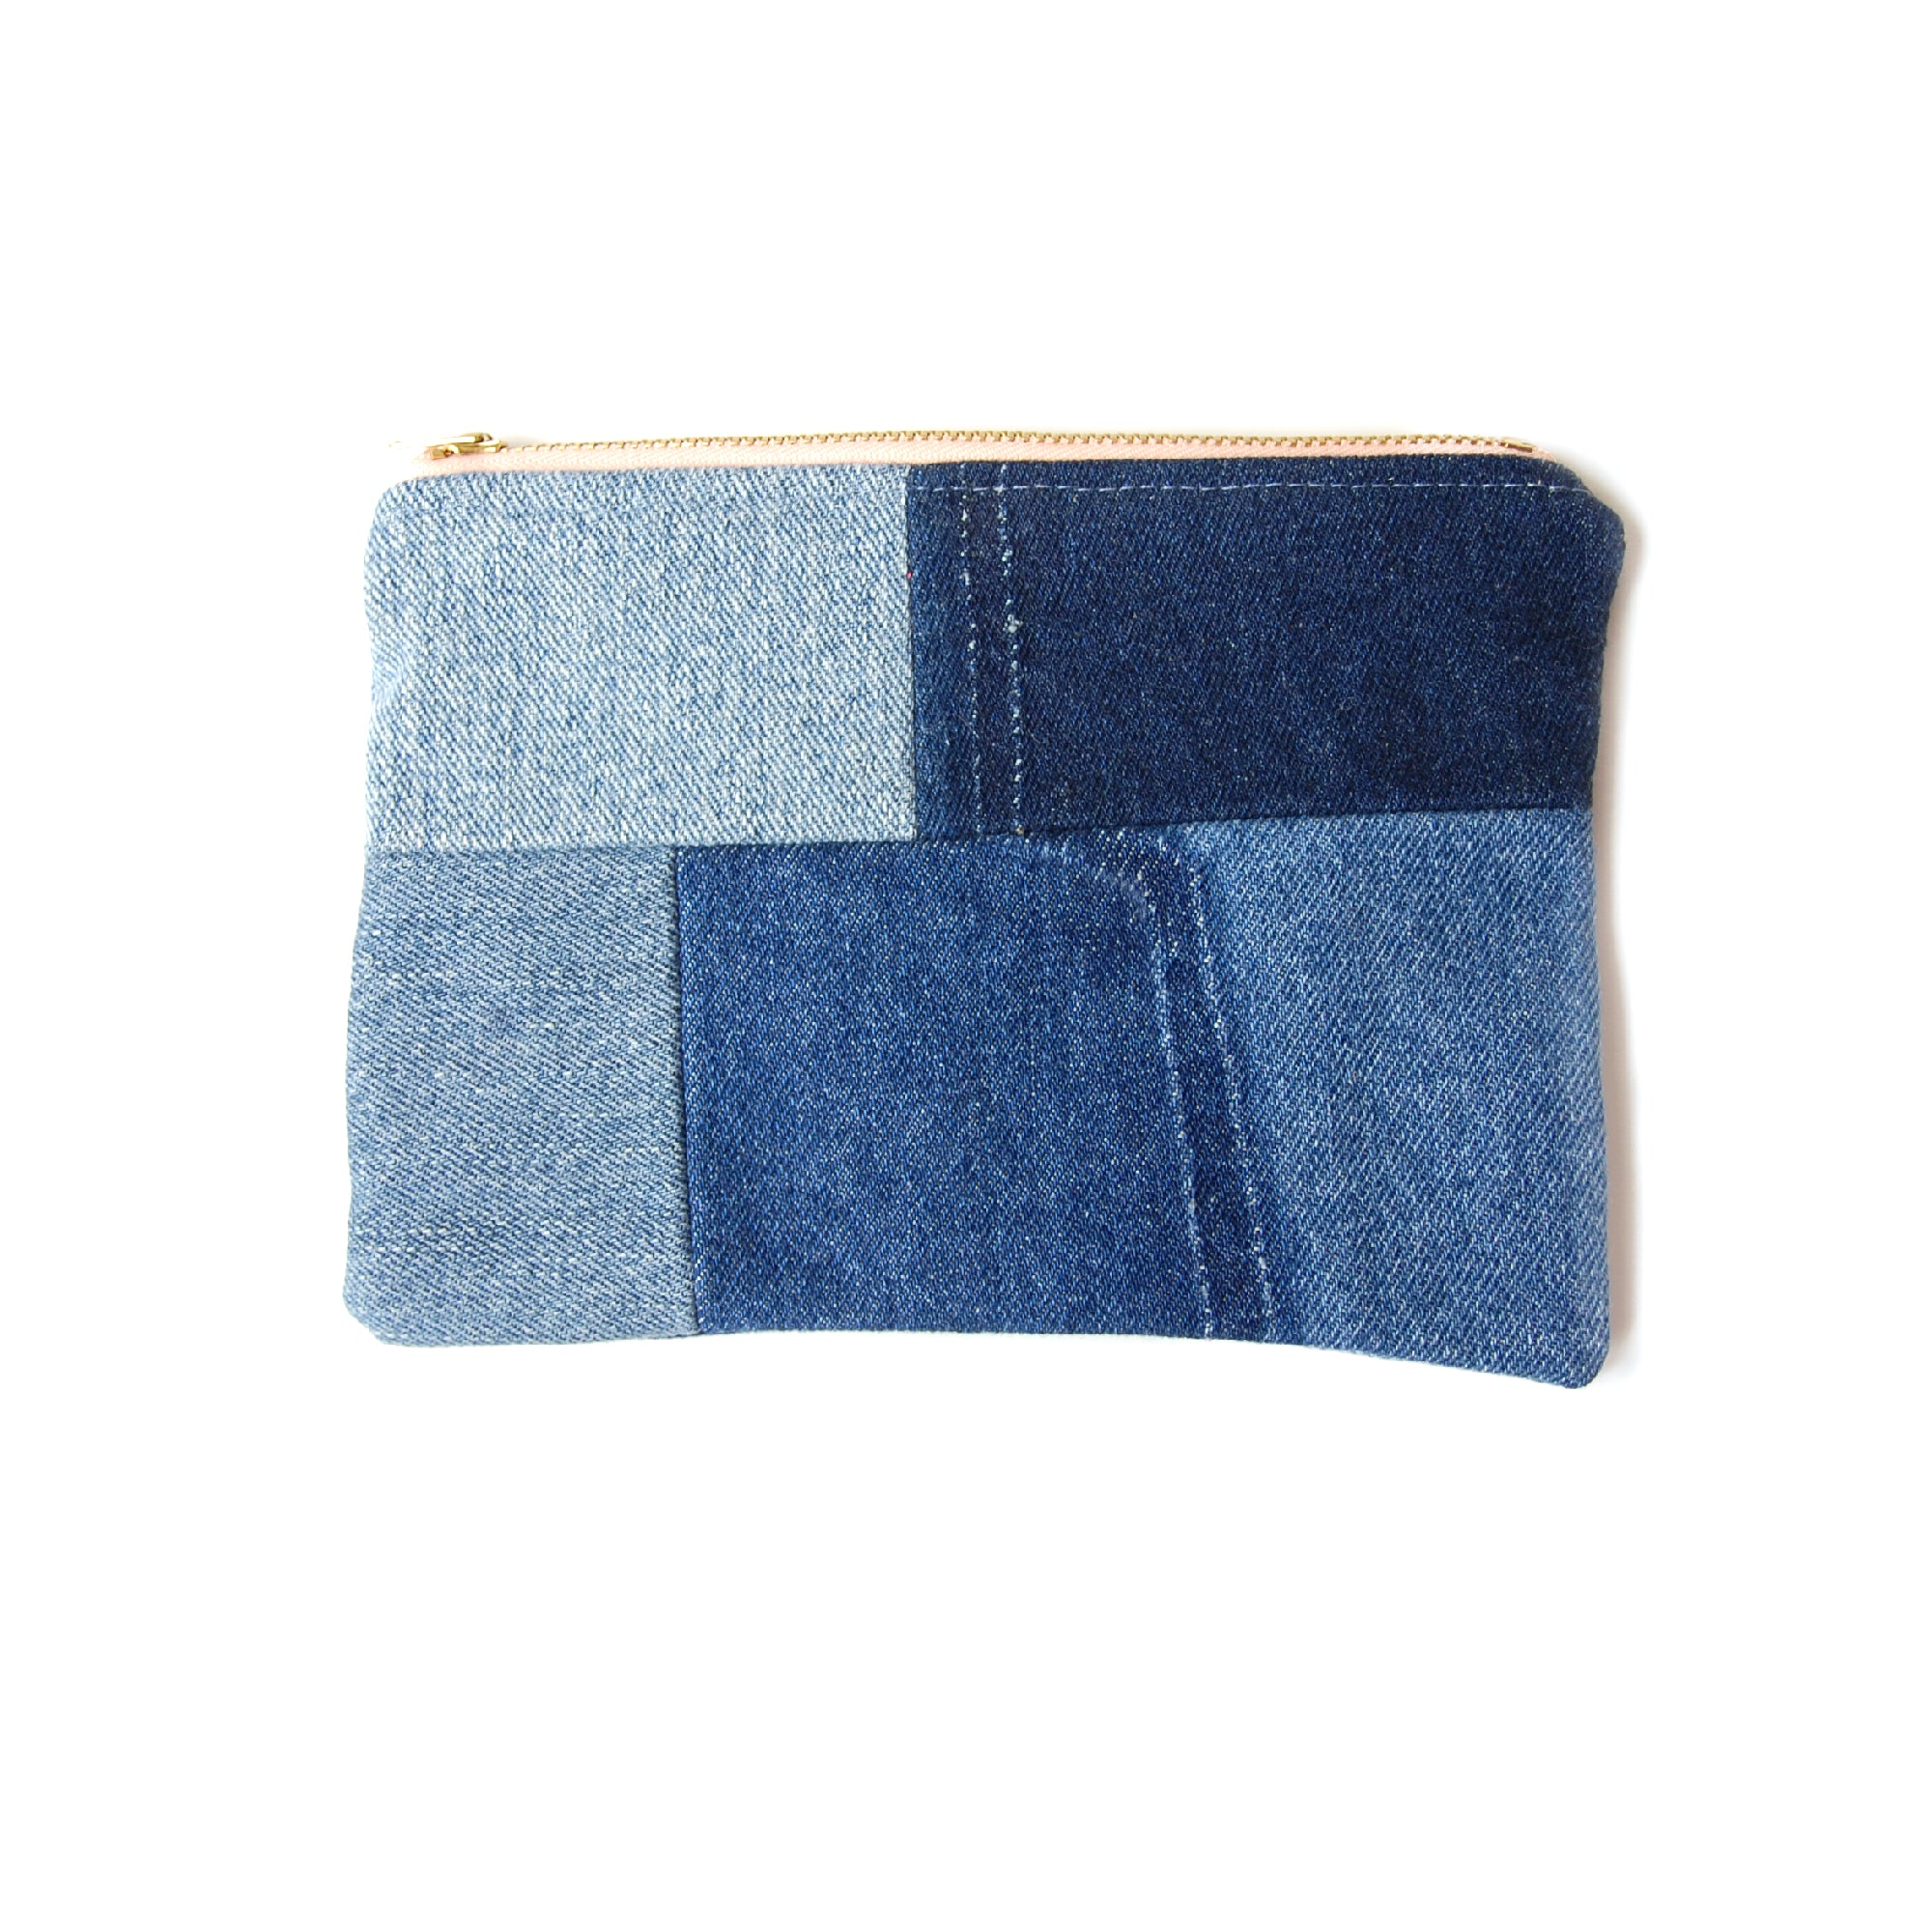 Denim Pouch (2) - Late to the Party